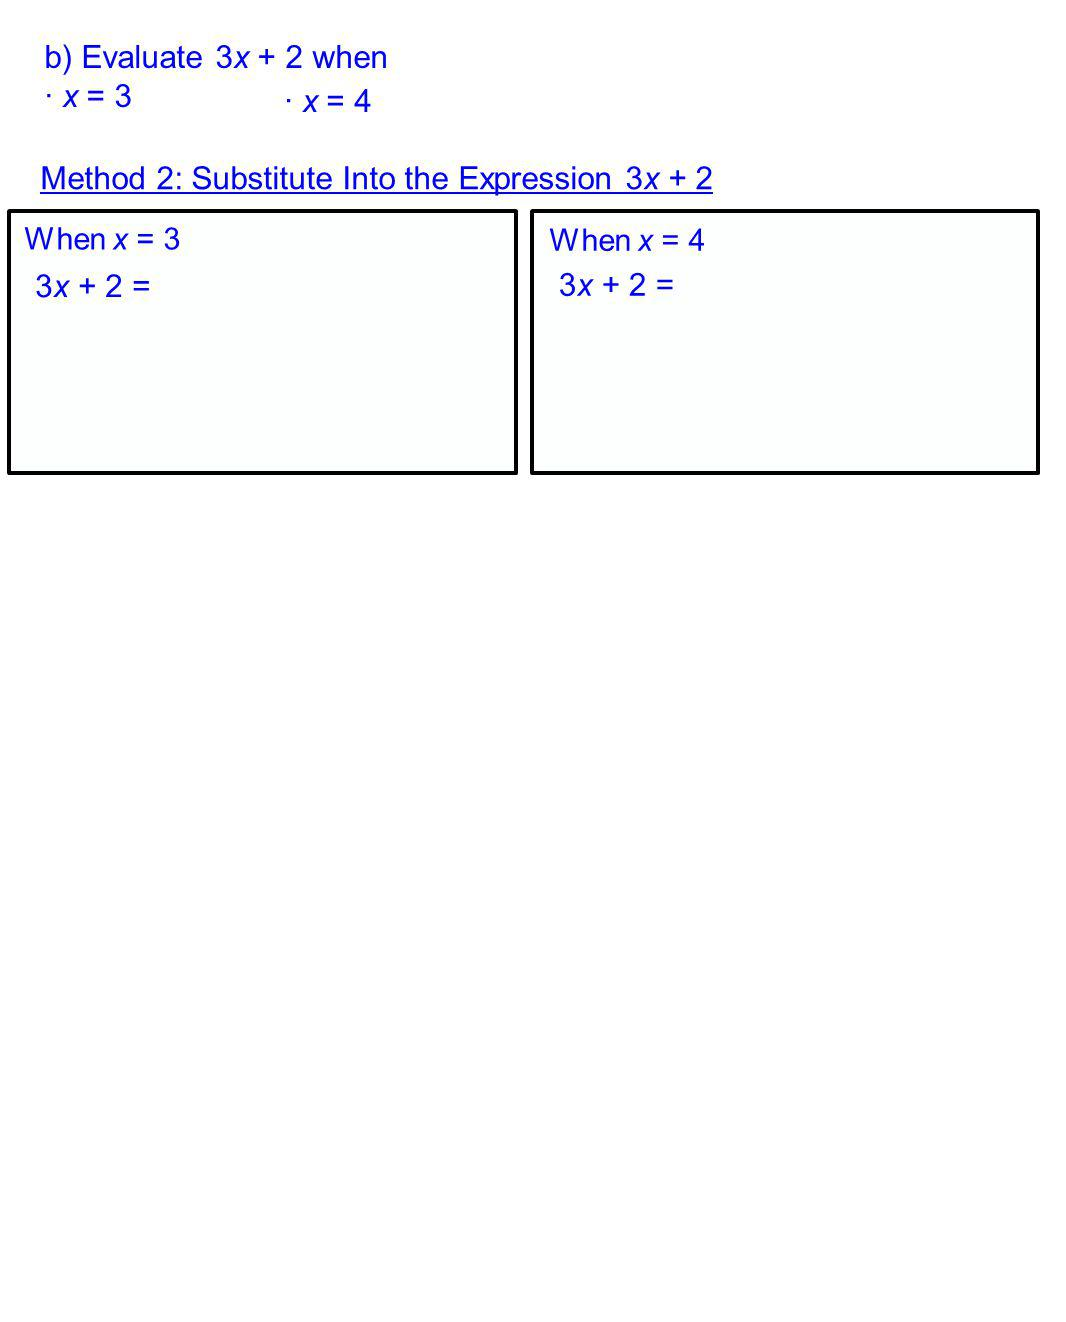 Method 2: Substitute Into the Expression 3x + 2